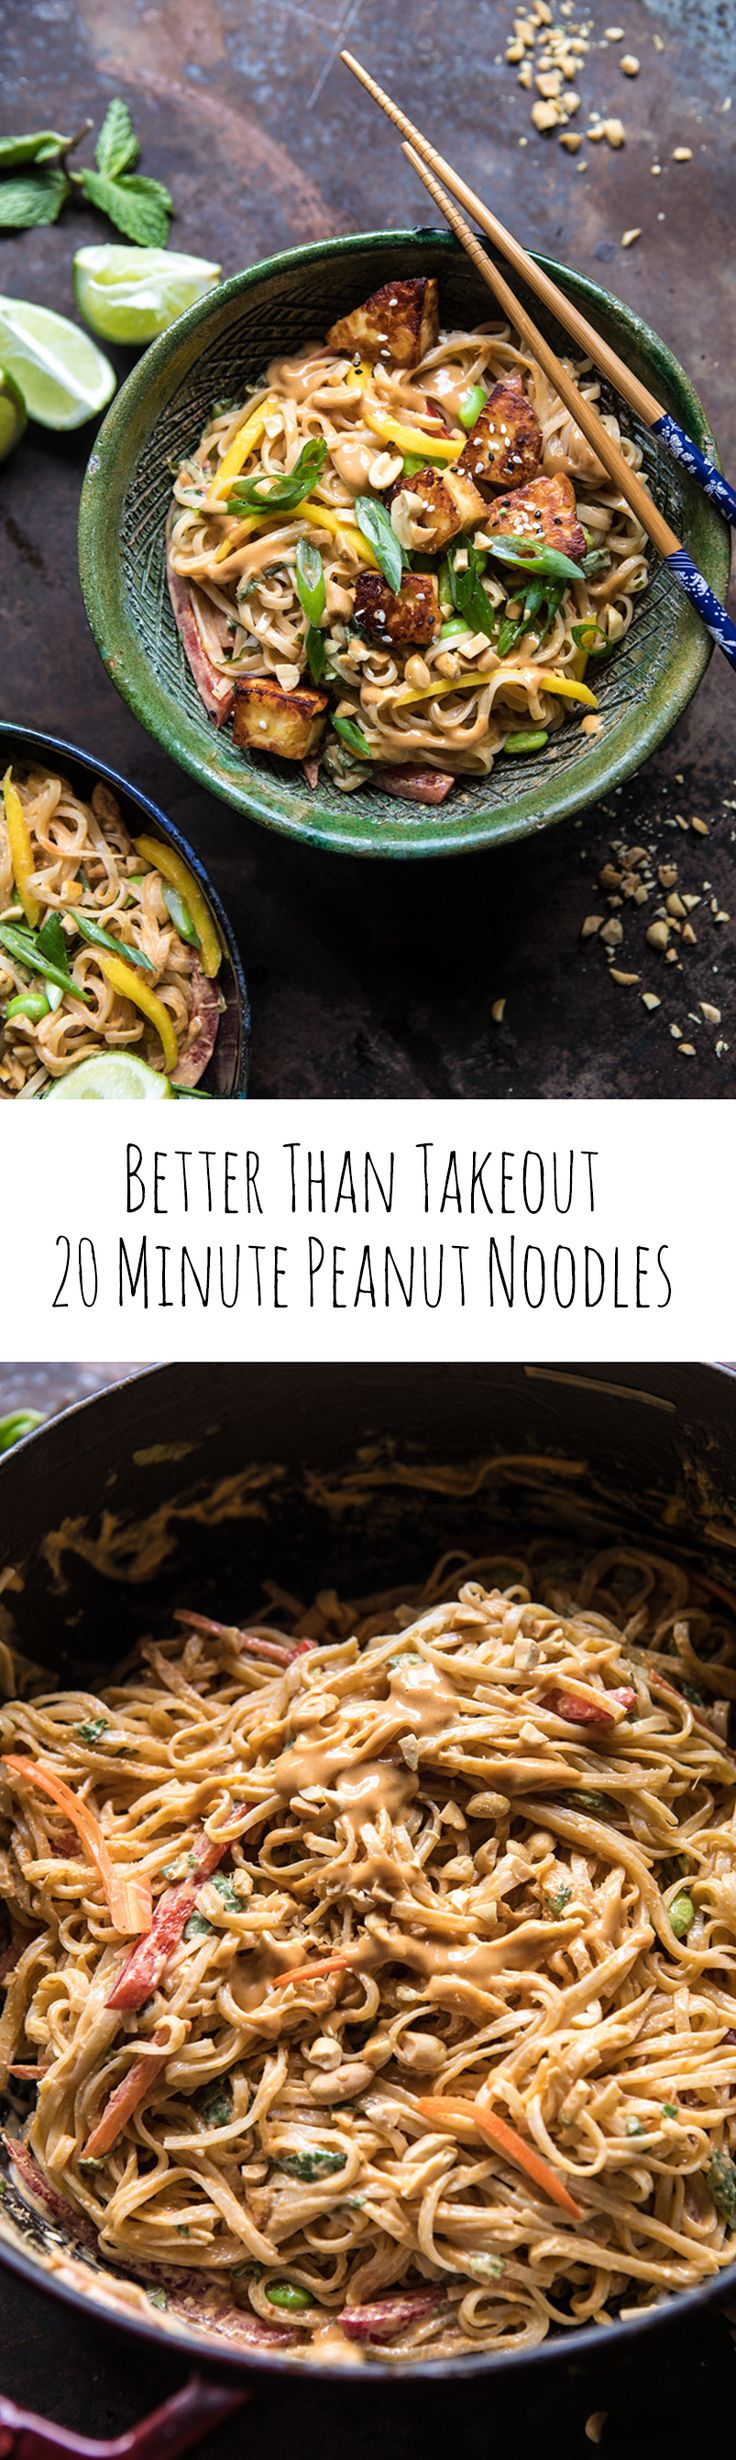 Better Than Takeout 20 Minute Peanut Noodles